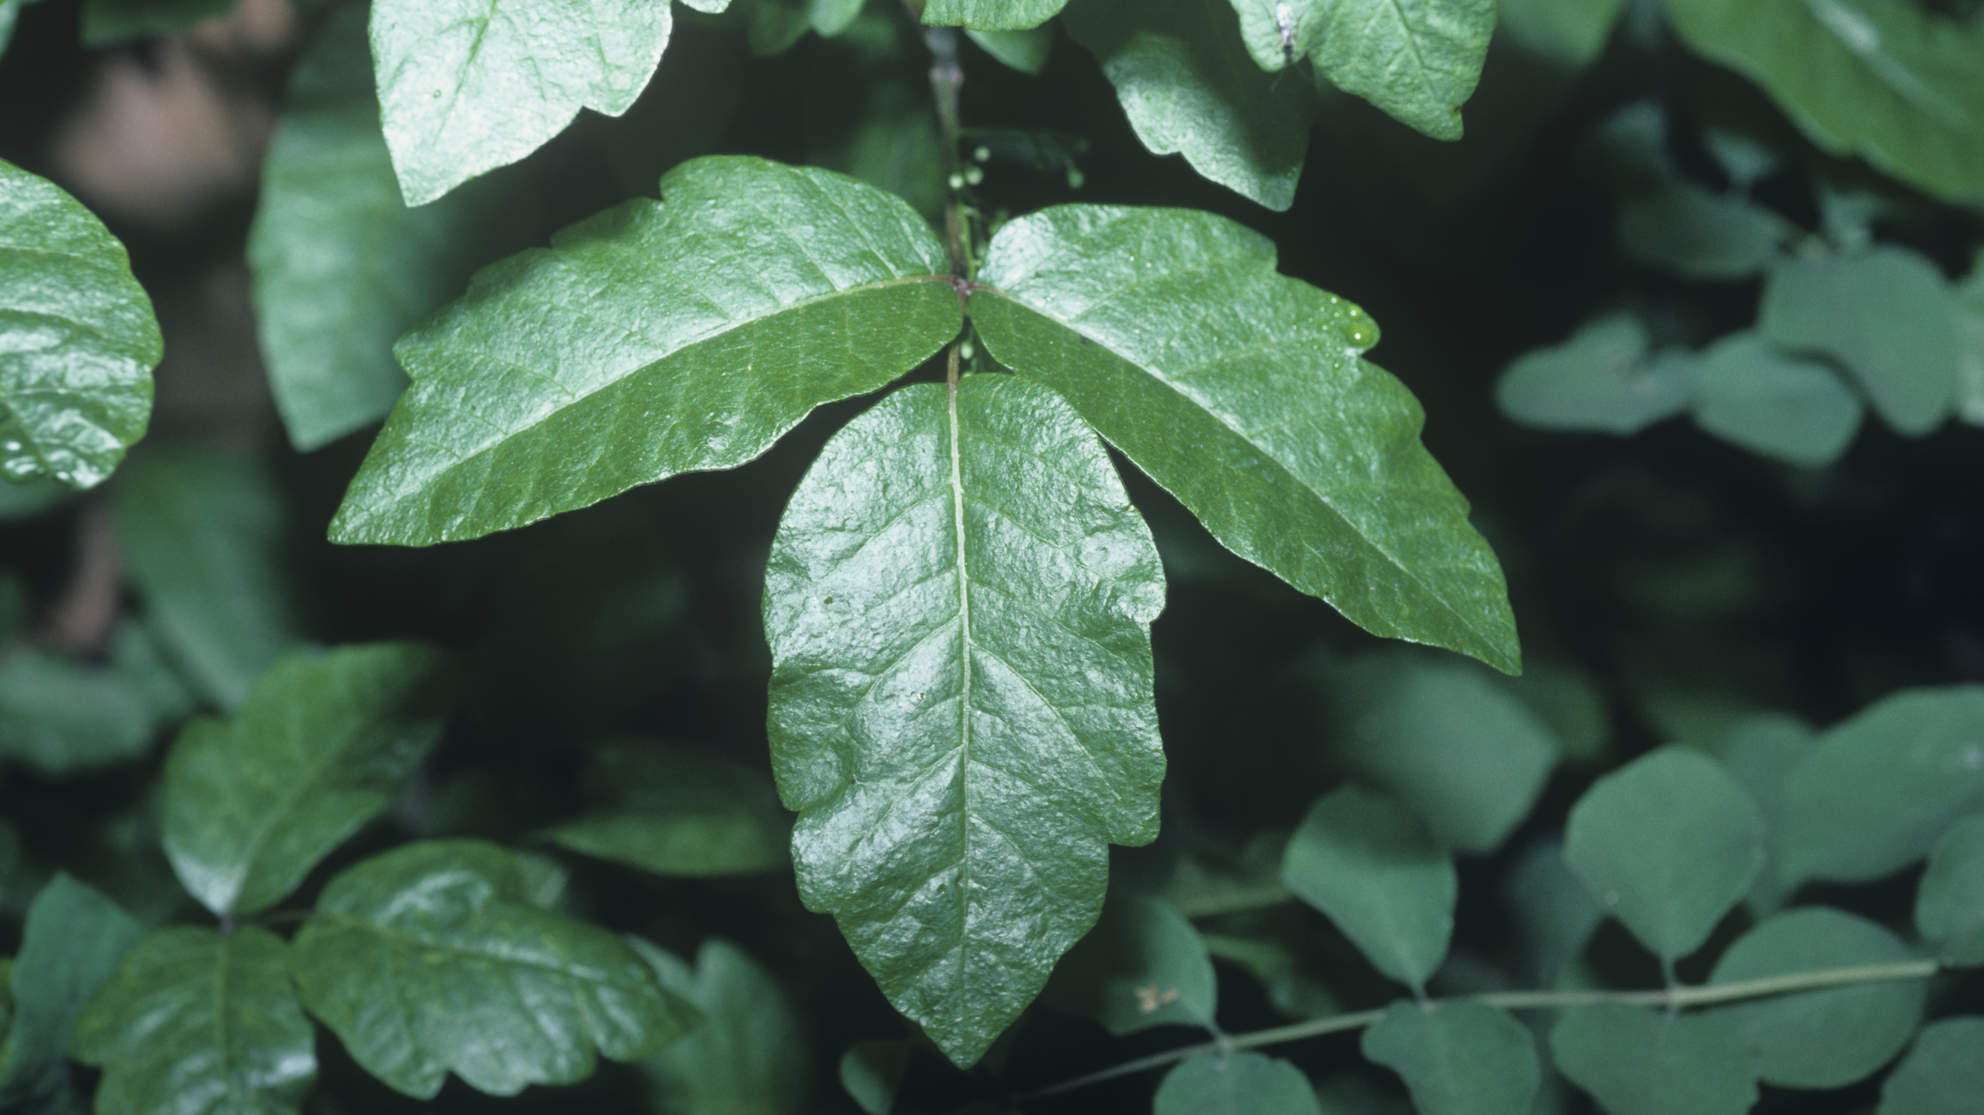 poison-ivy-leaves-bush